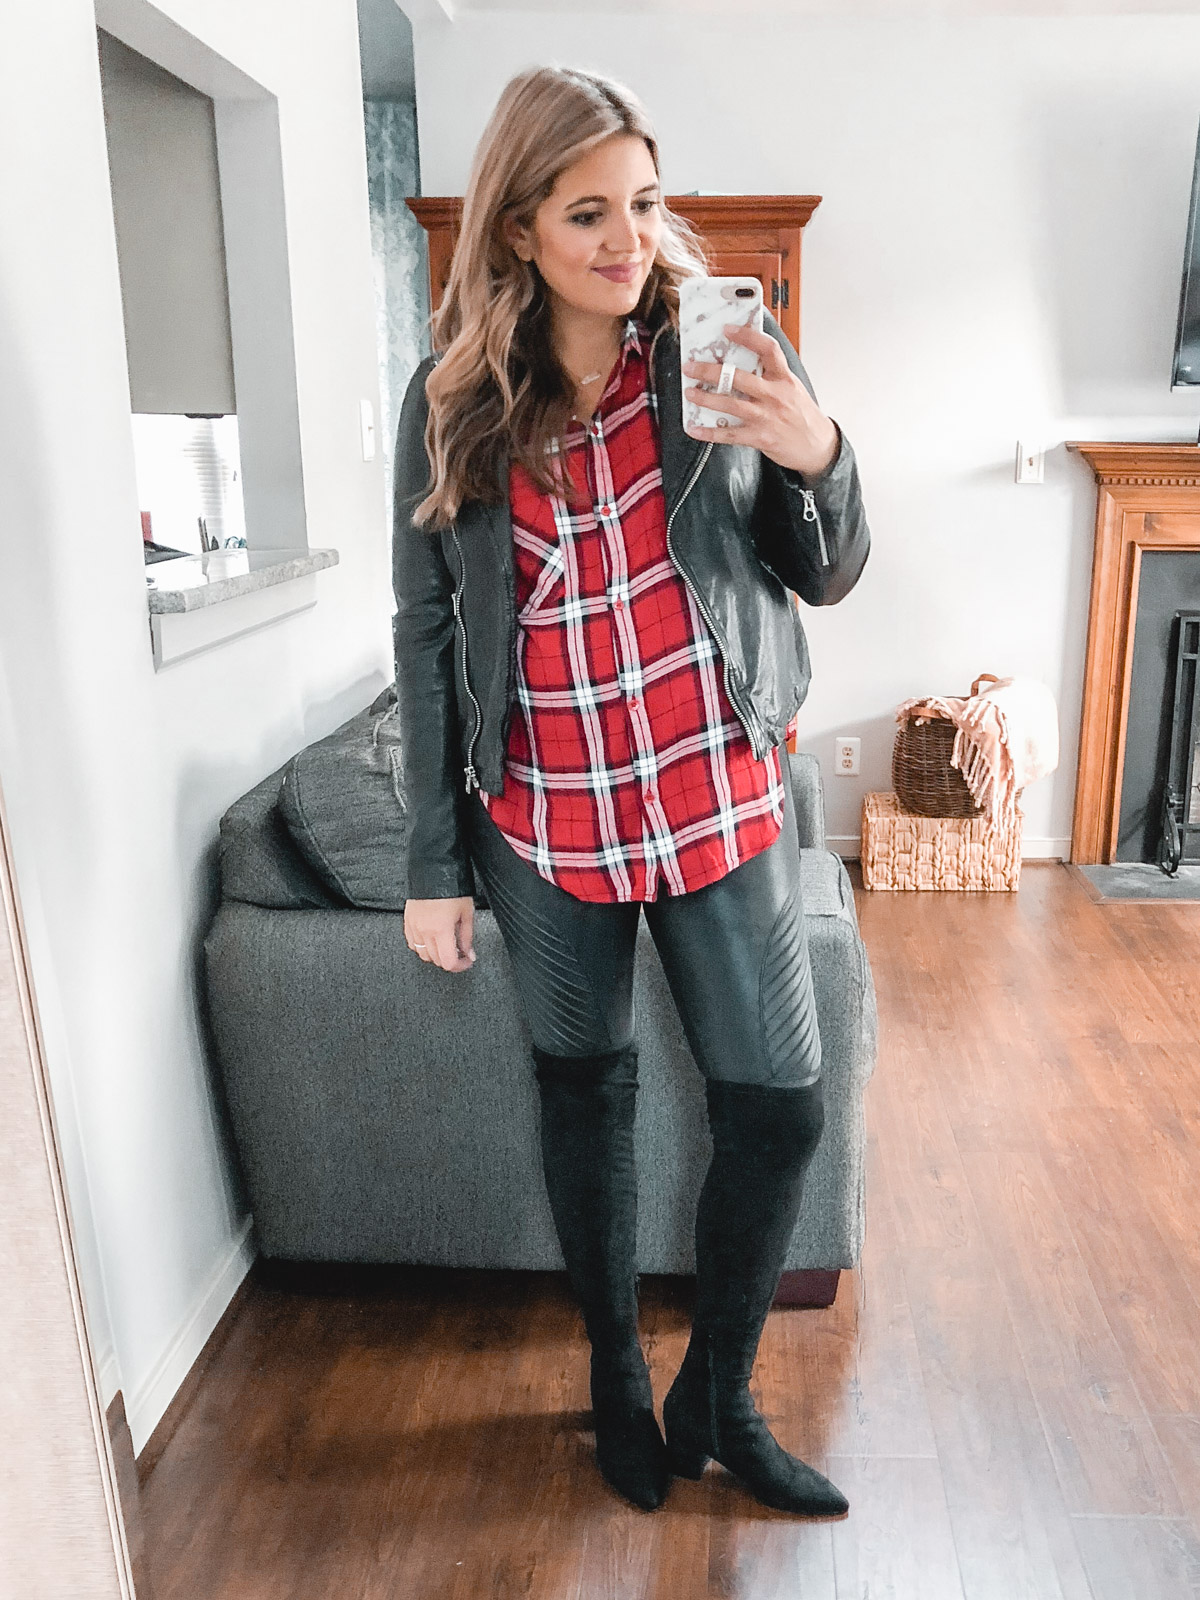 leggings plaid top outfit - Need plaid top outfit ideas? I'm sharing one $31 plaid top styled 15 different ways on bylaurenm.com!